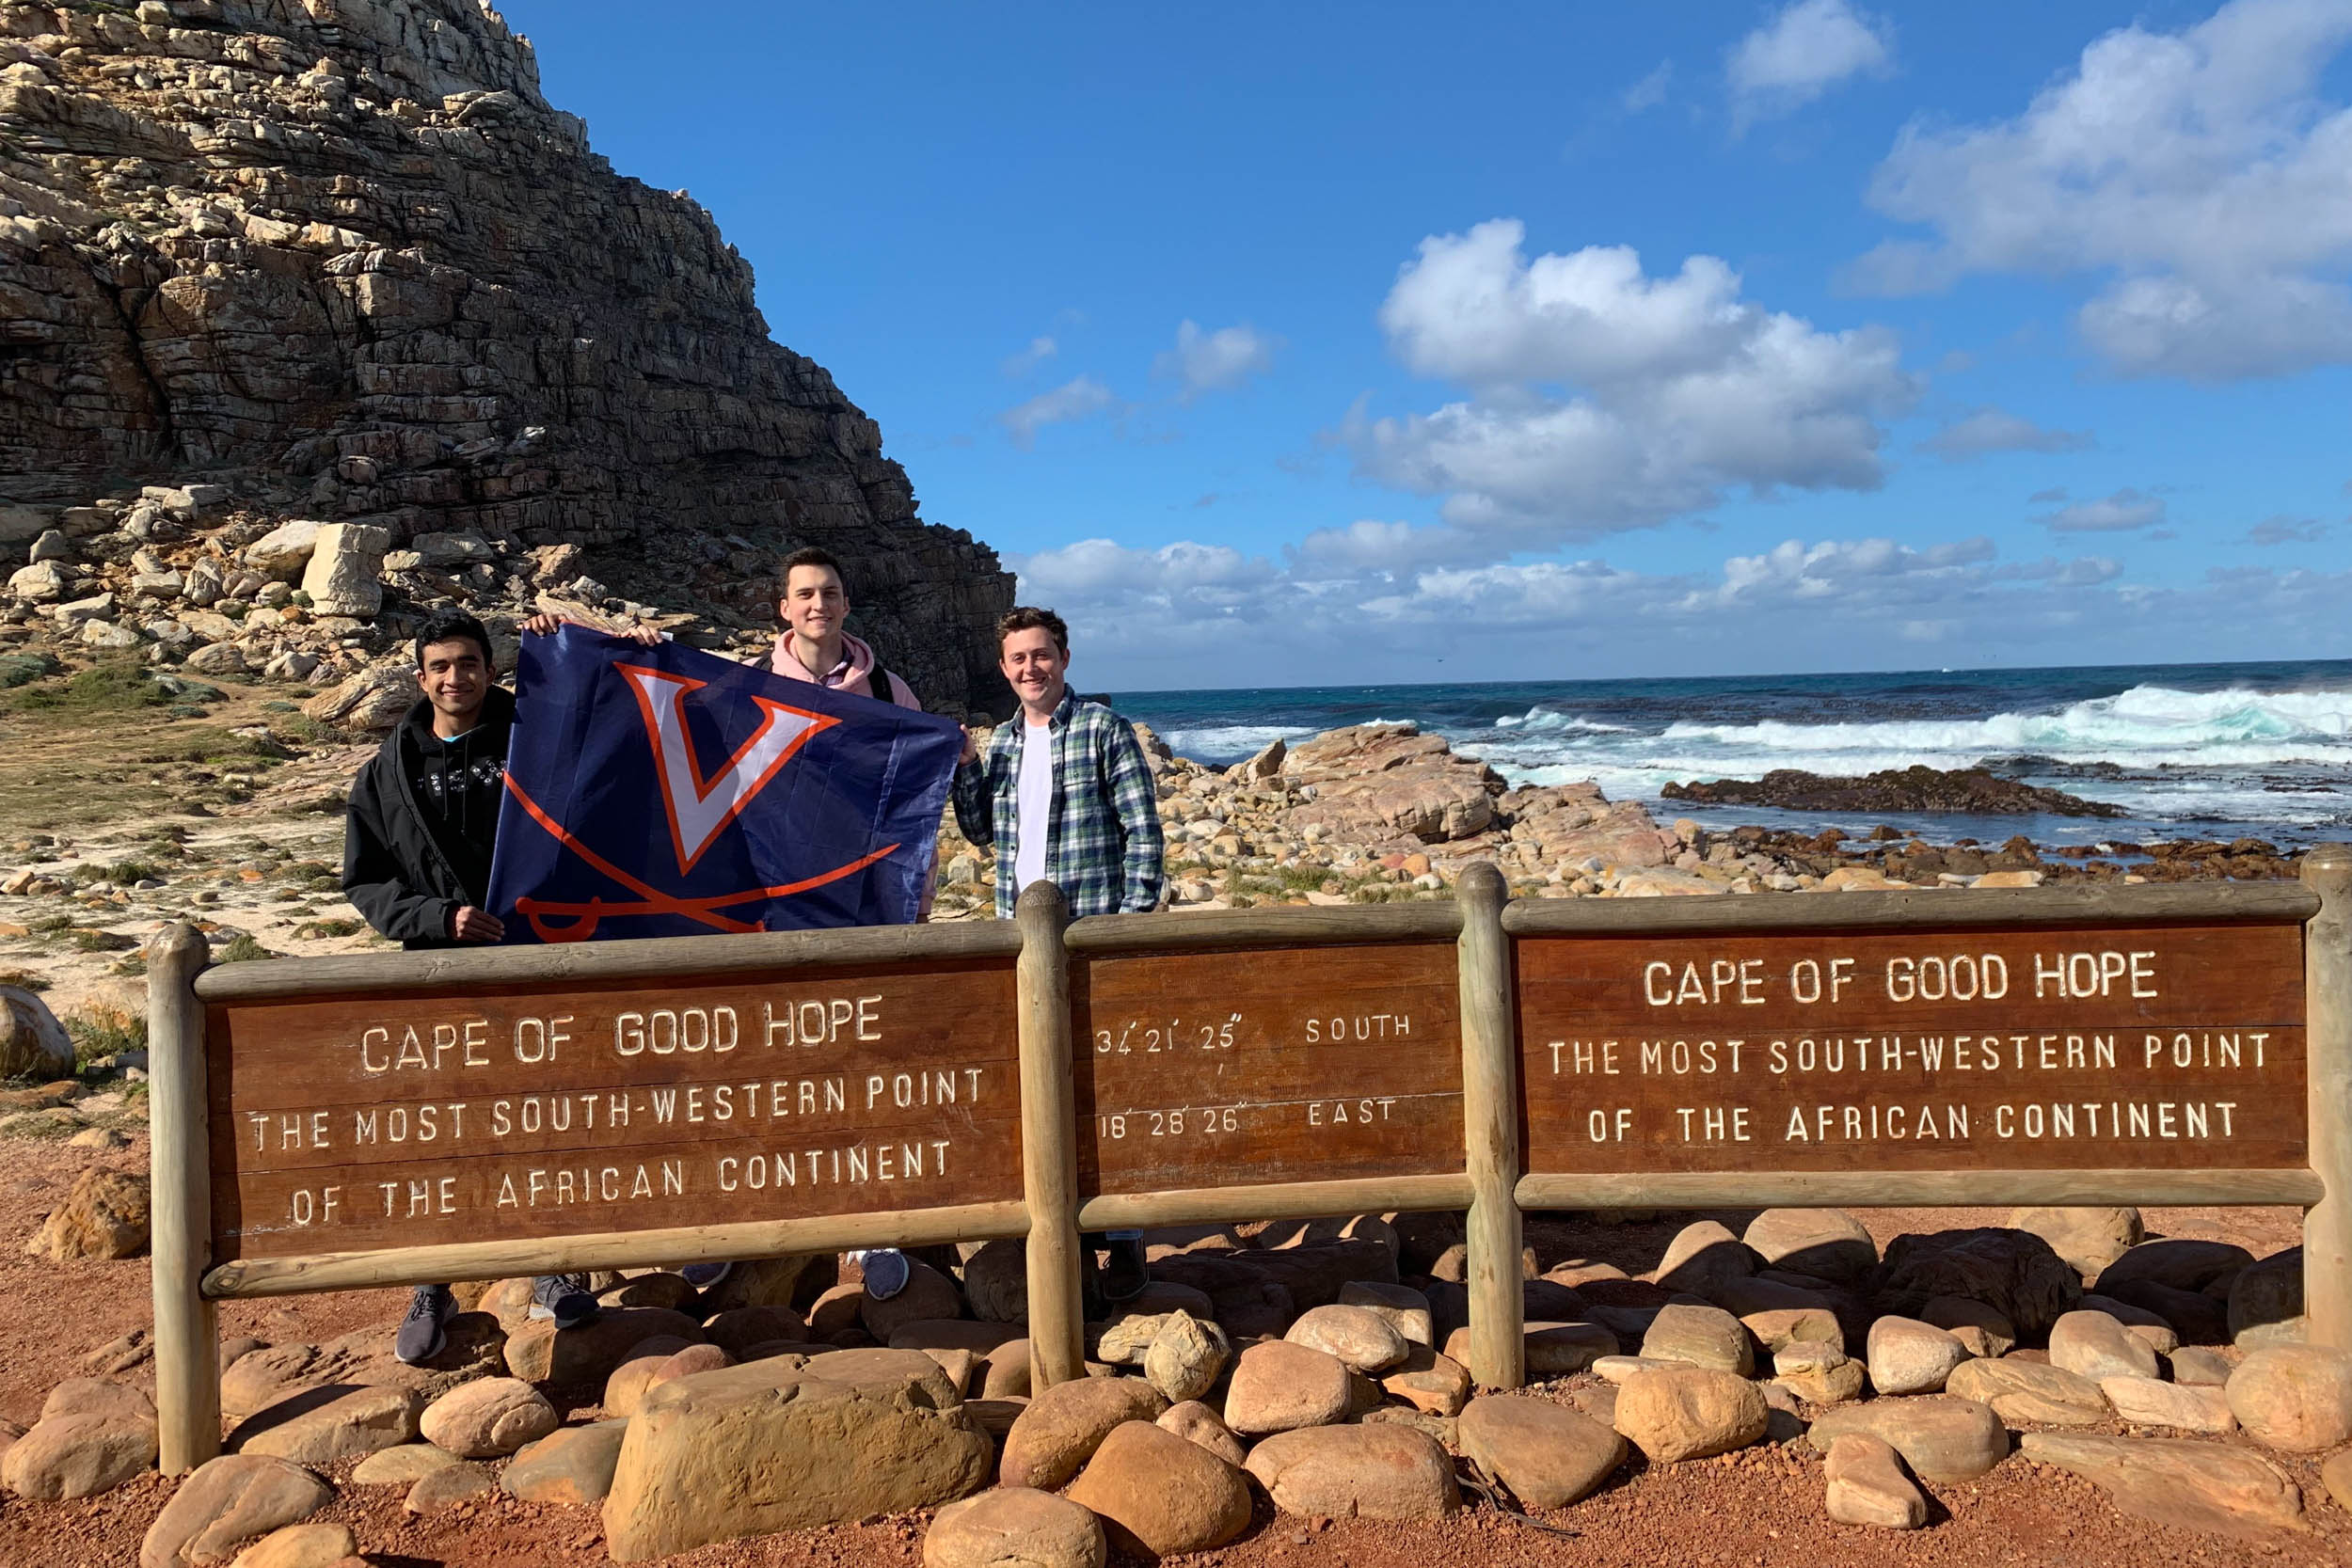 Left to right, Akash Bhat, Joel Thomas and Matt Ryan at the Cape of Good Hope showing their school spirit with a UVA flag.